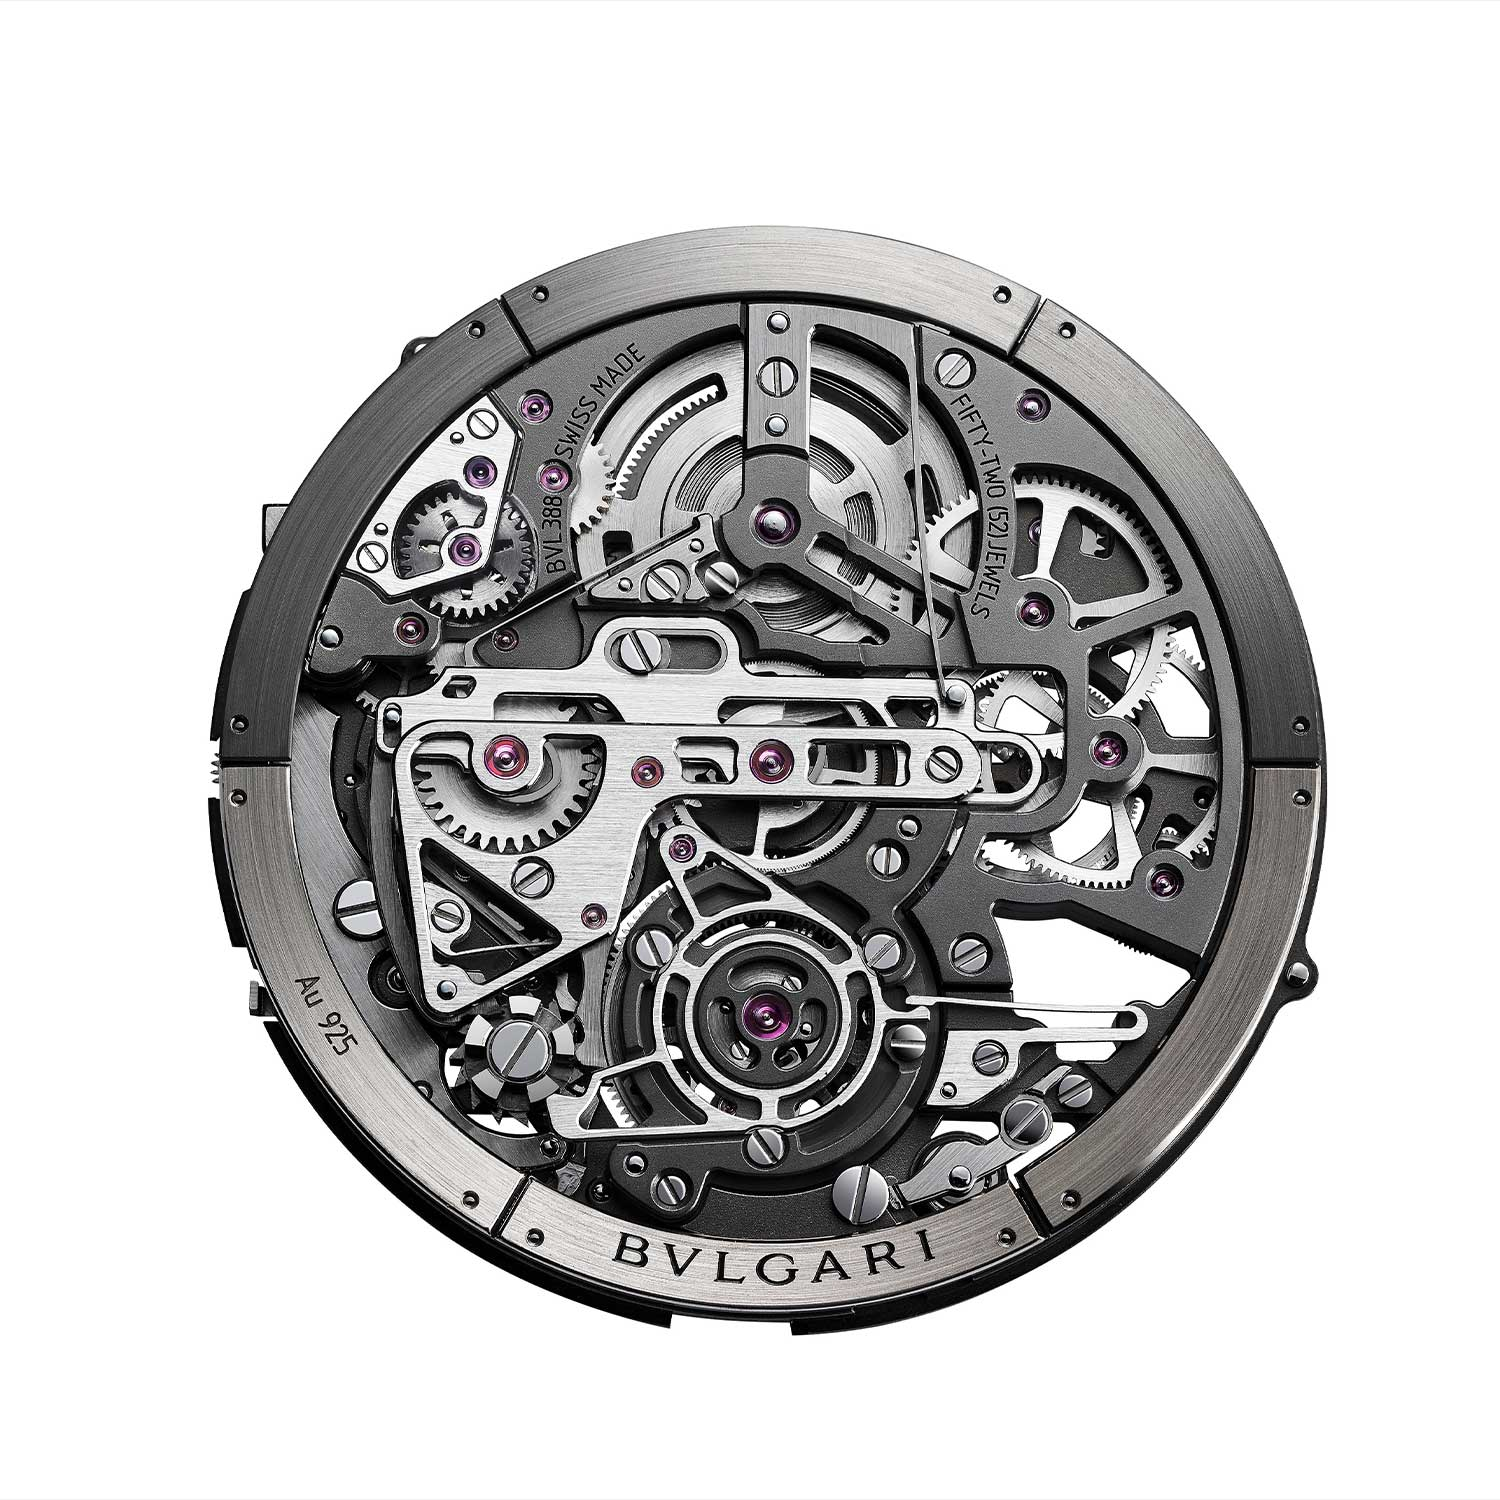 The view of the 3.5mm BVL388 calibre as from the display caseback